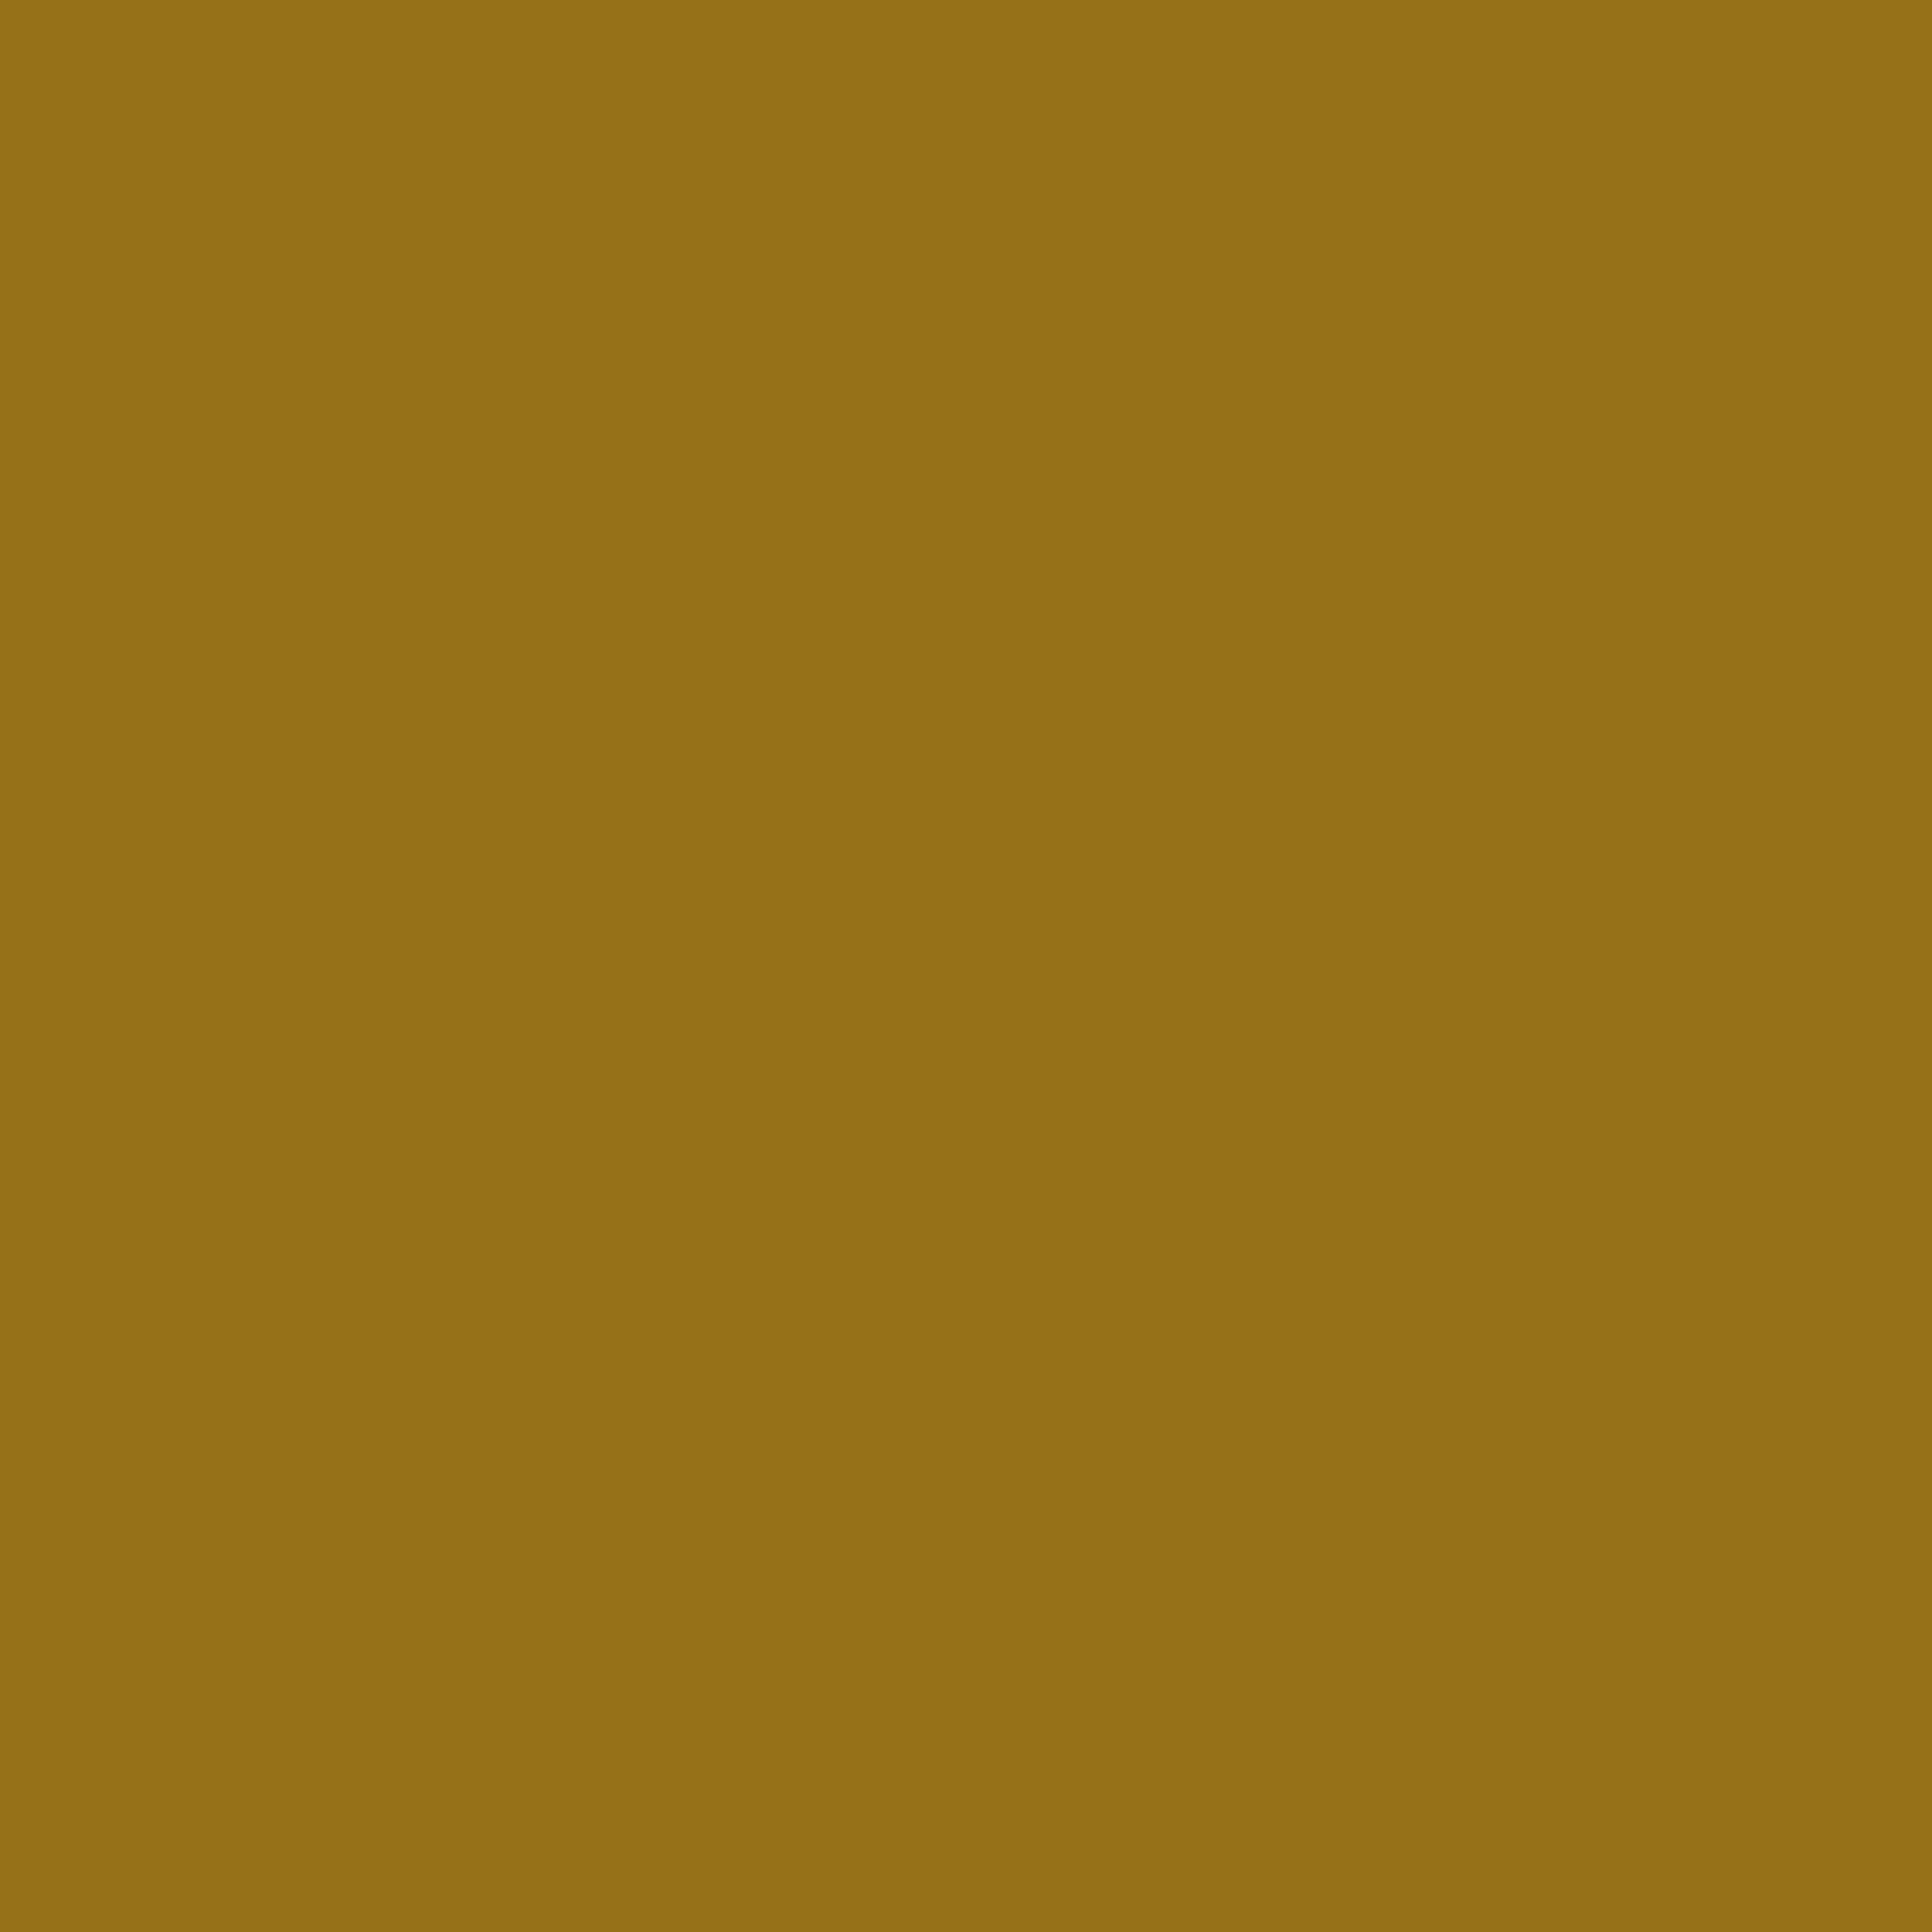 2048x2048 Drab Solid Color Background